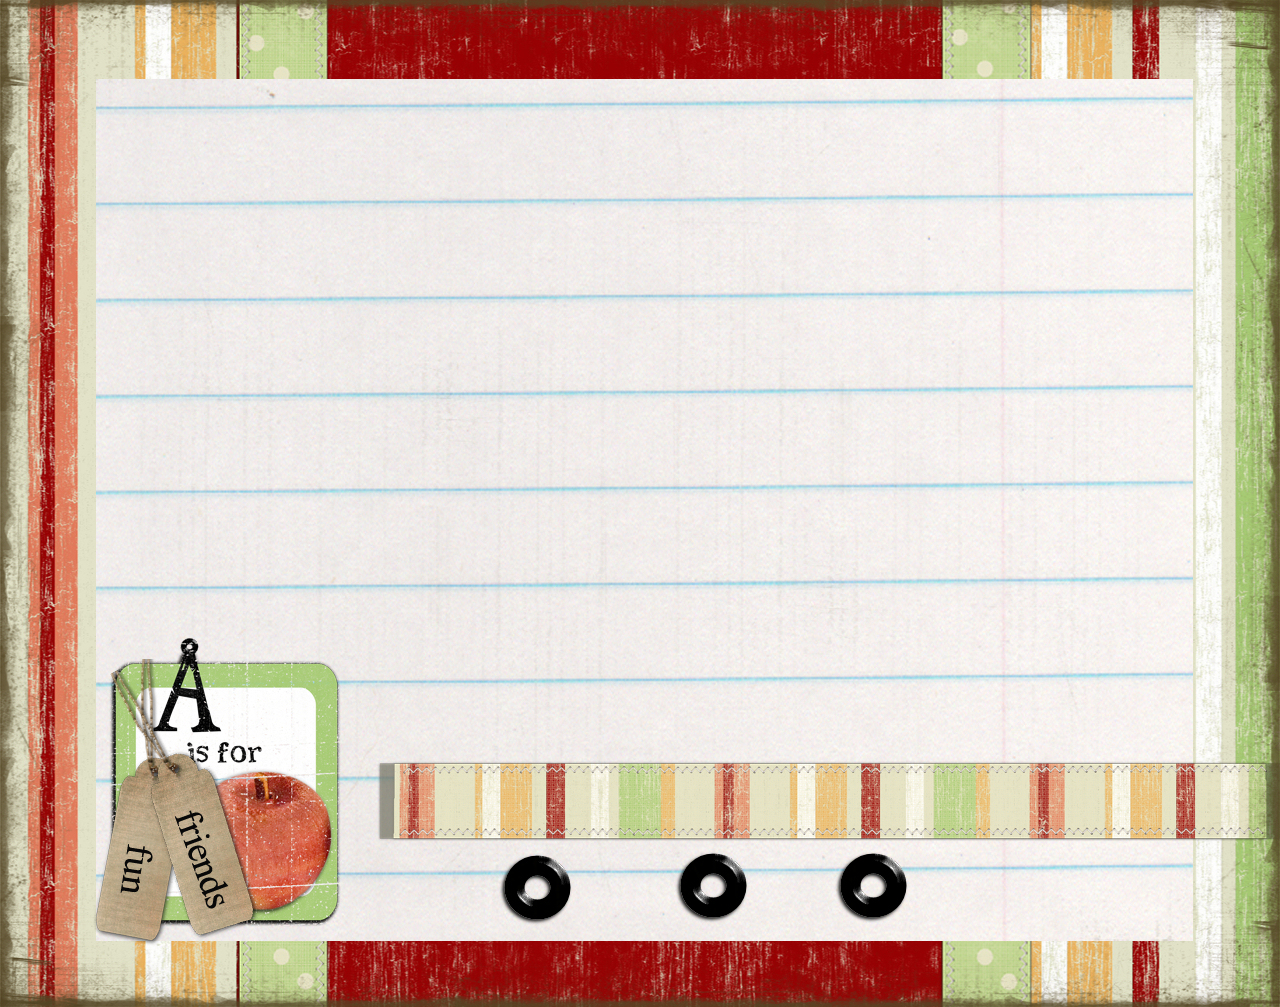 abc notepaper back to school backgrounds wallpapersjpg 1280x1007